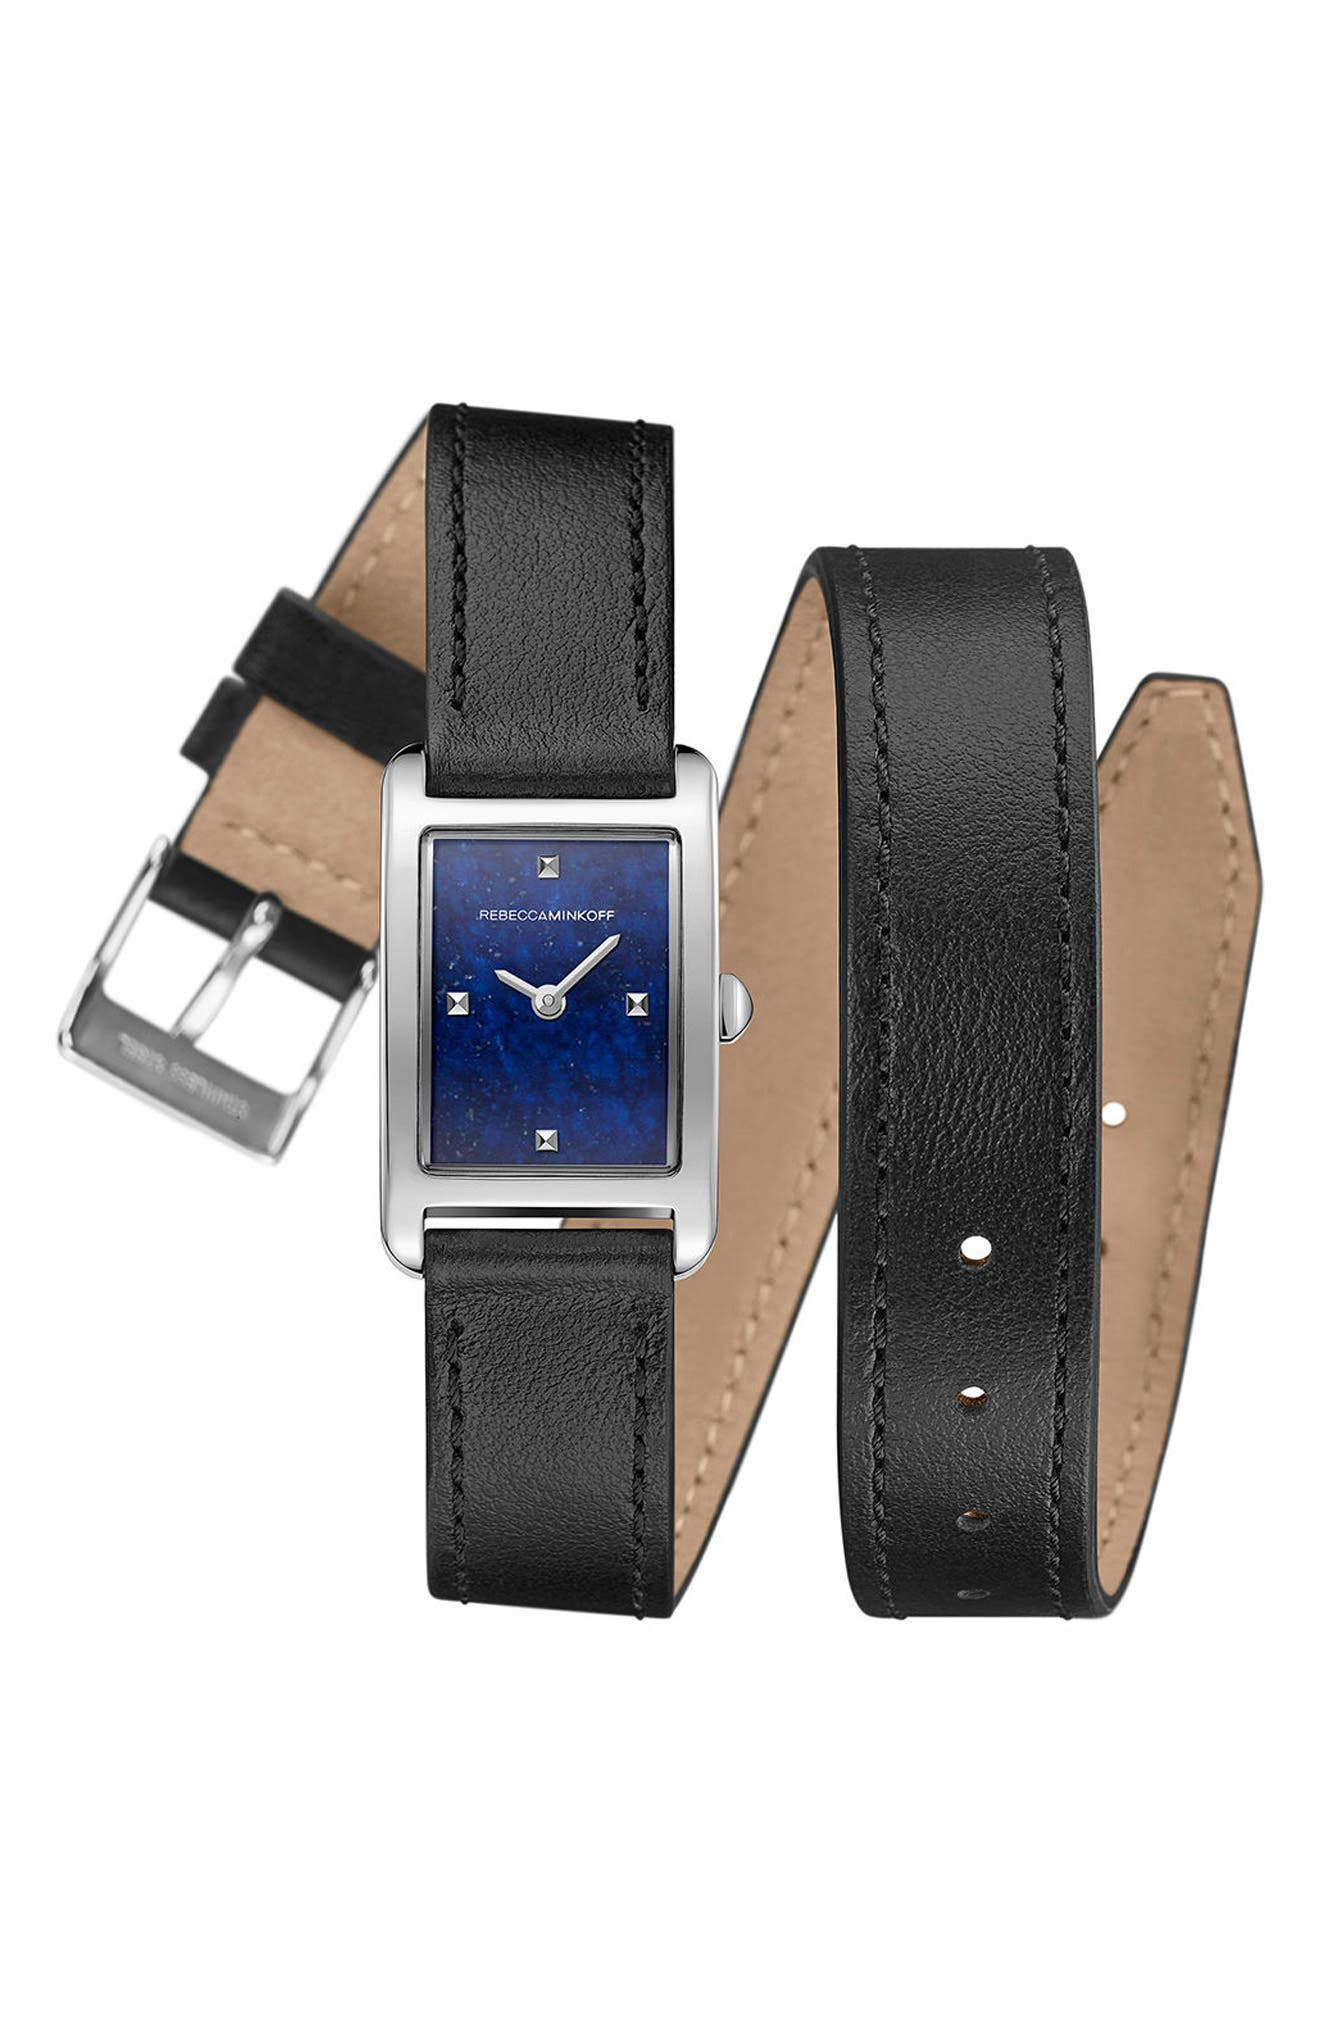 Main Image - Rebecca Minkoff Moment Wrap Leather Strap Watch, 19mm x 30mm